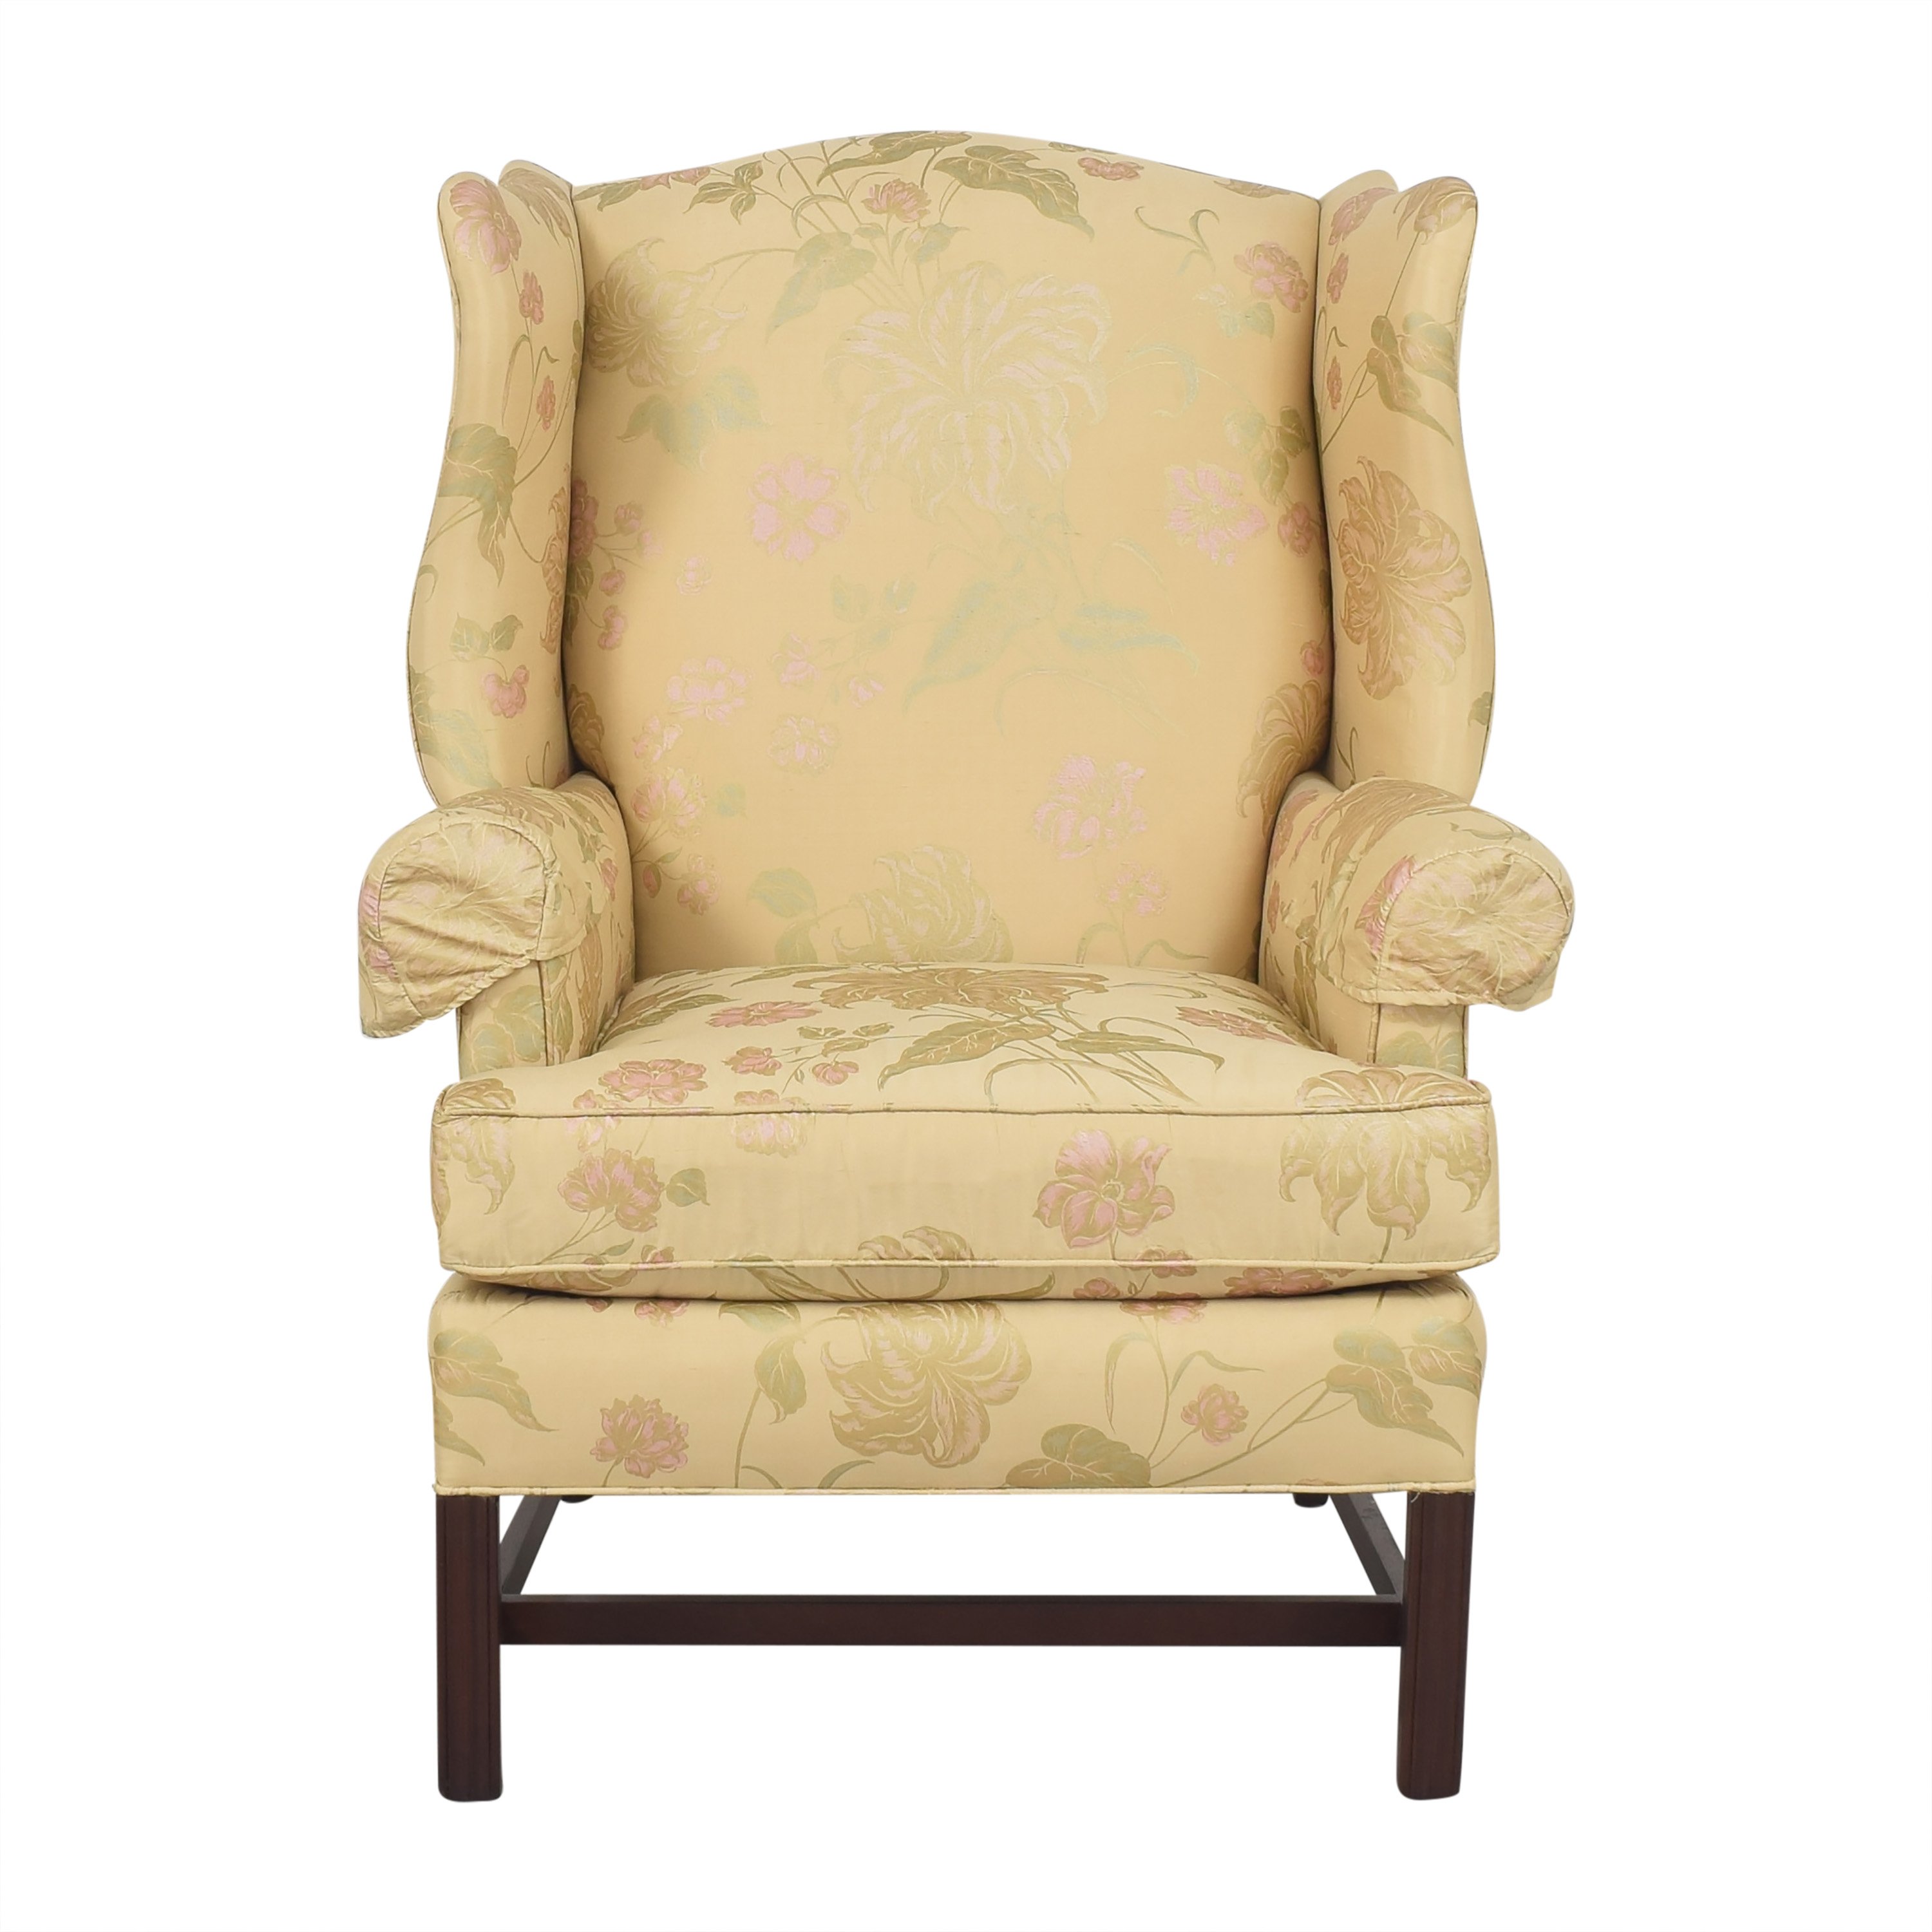 CR Laine CR Laine Upholstered Accent Chair nj